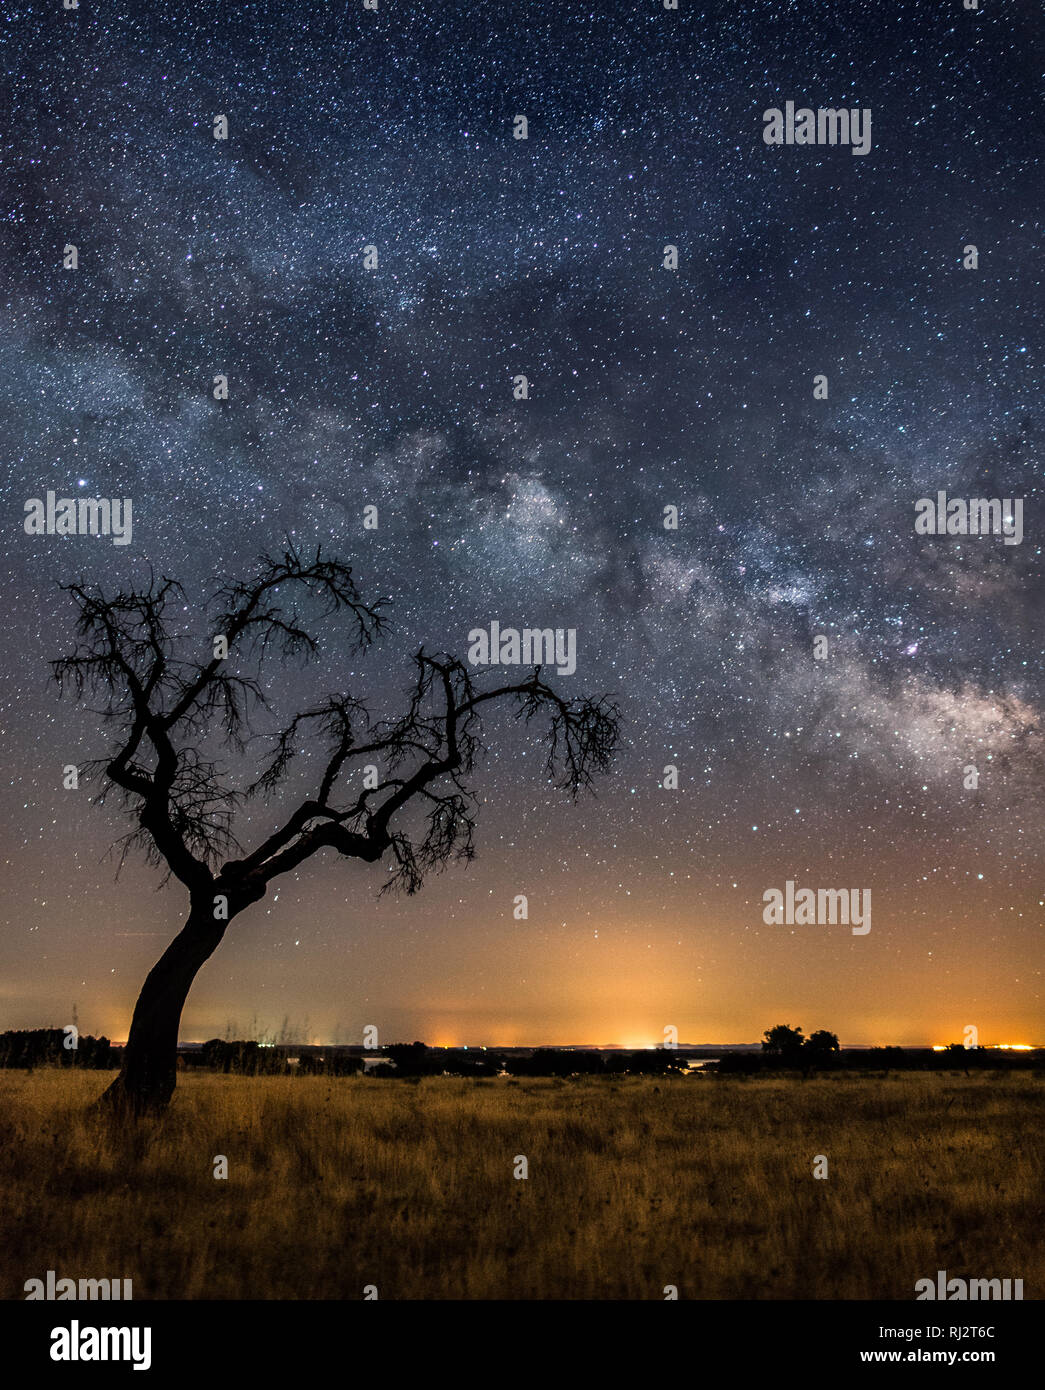 Astrophotography with a single tree - Stock Image